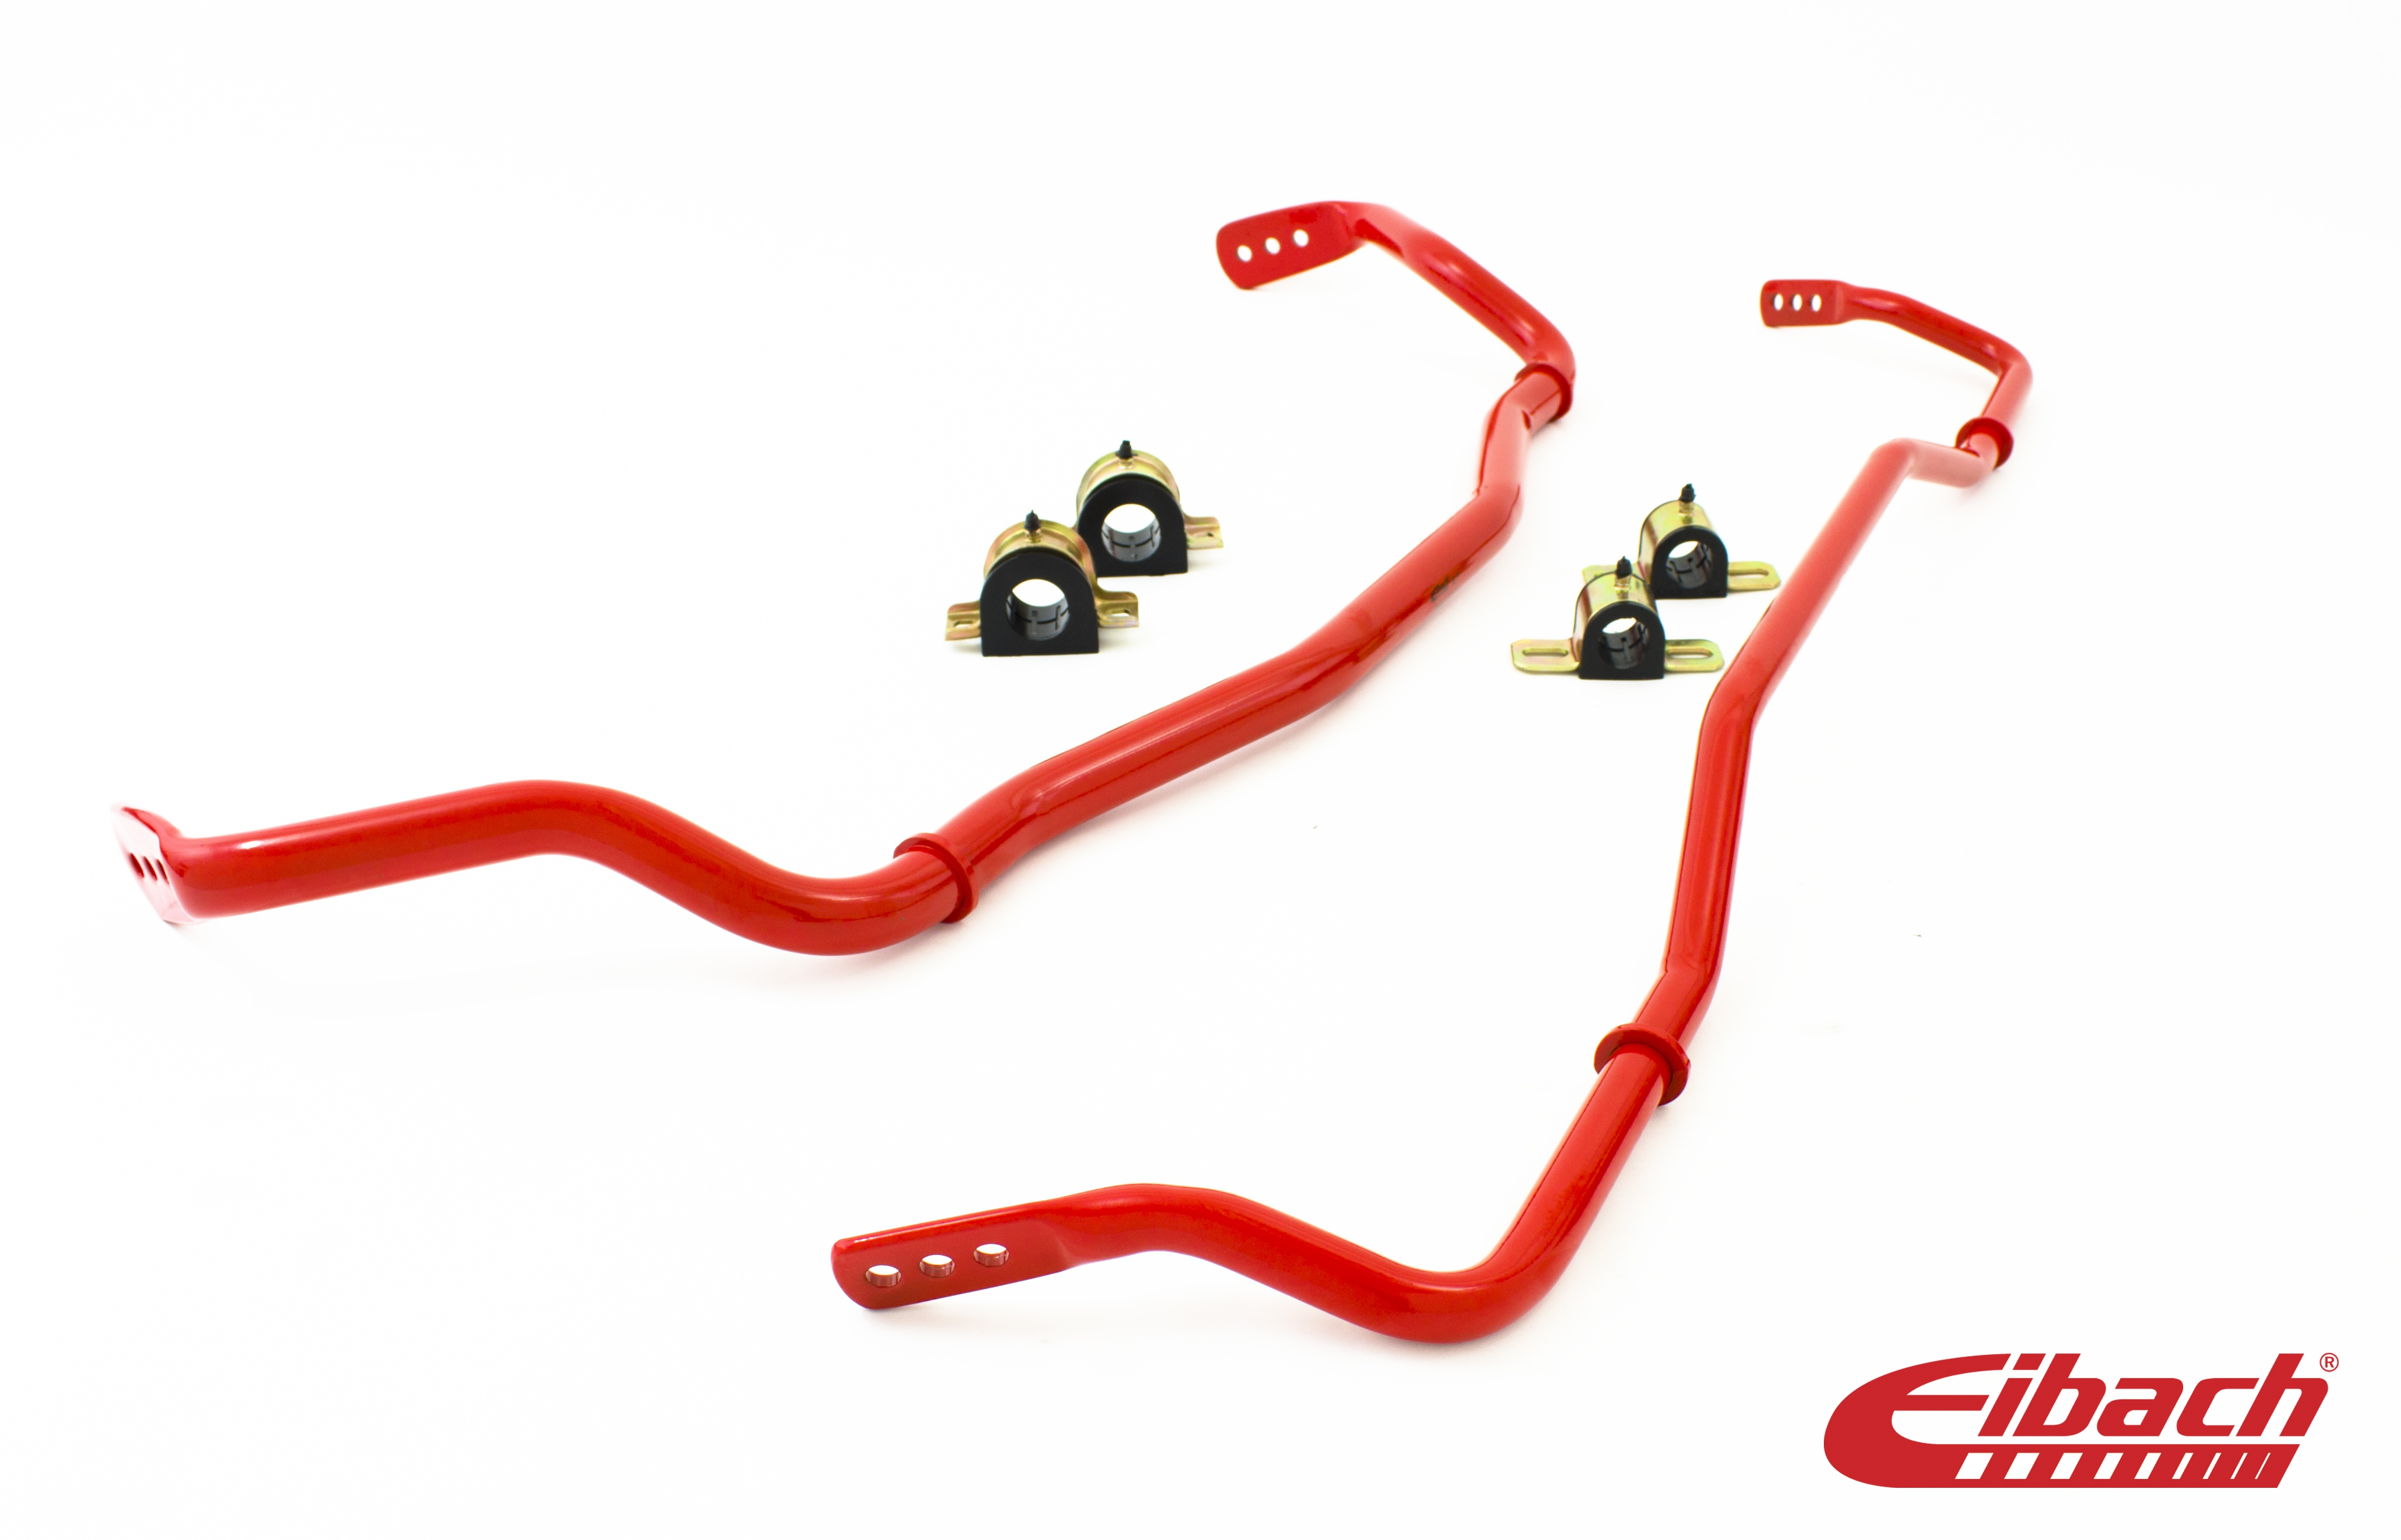 230 Bobcat Tractor Adjustable Stabilizer Bar : New at summit racing equipment eibach pro touring